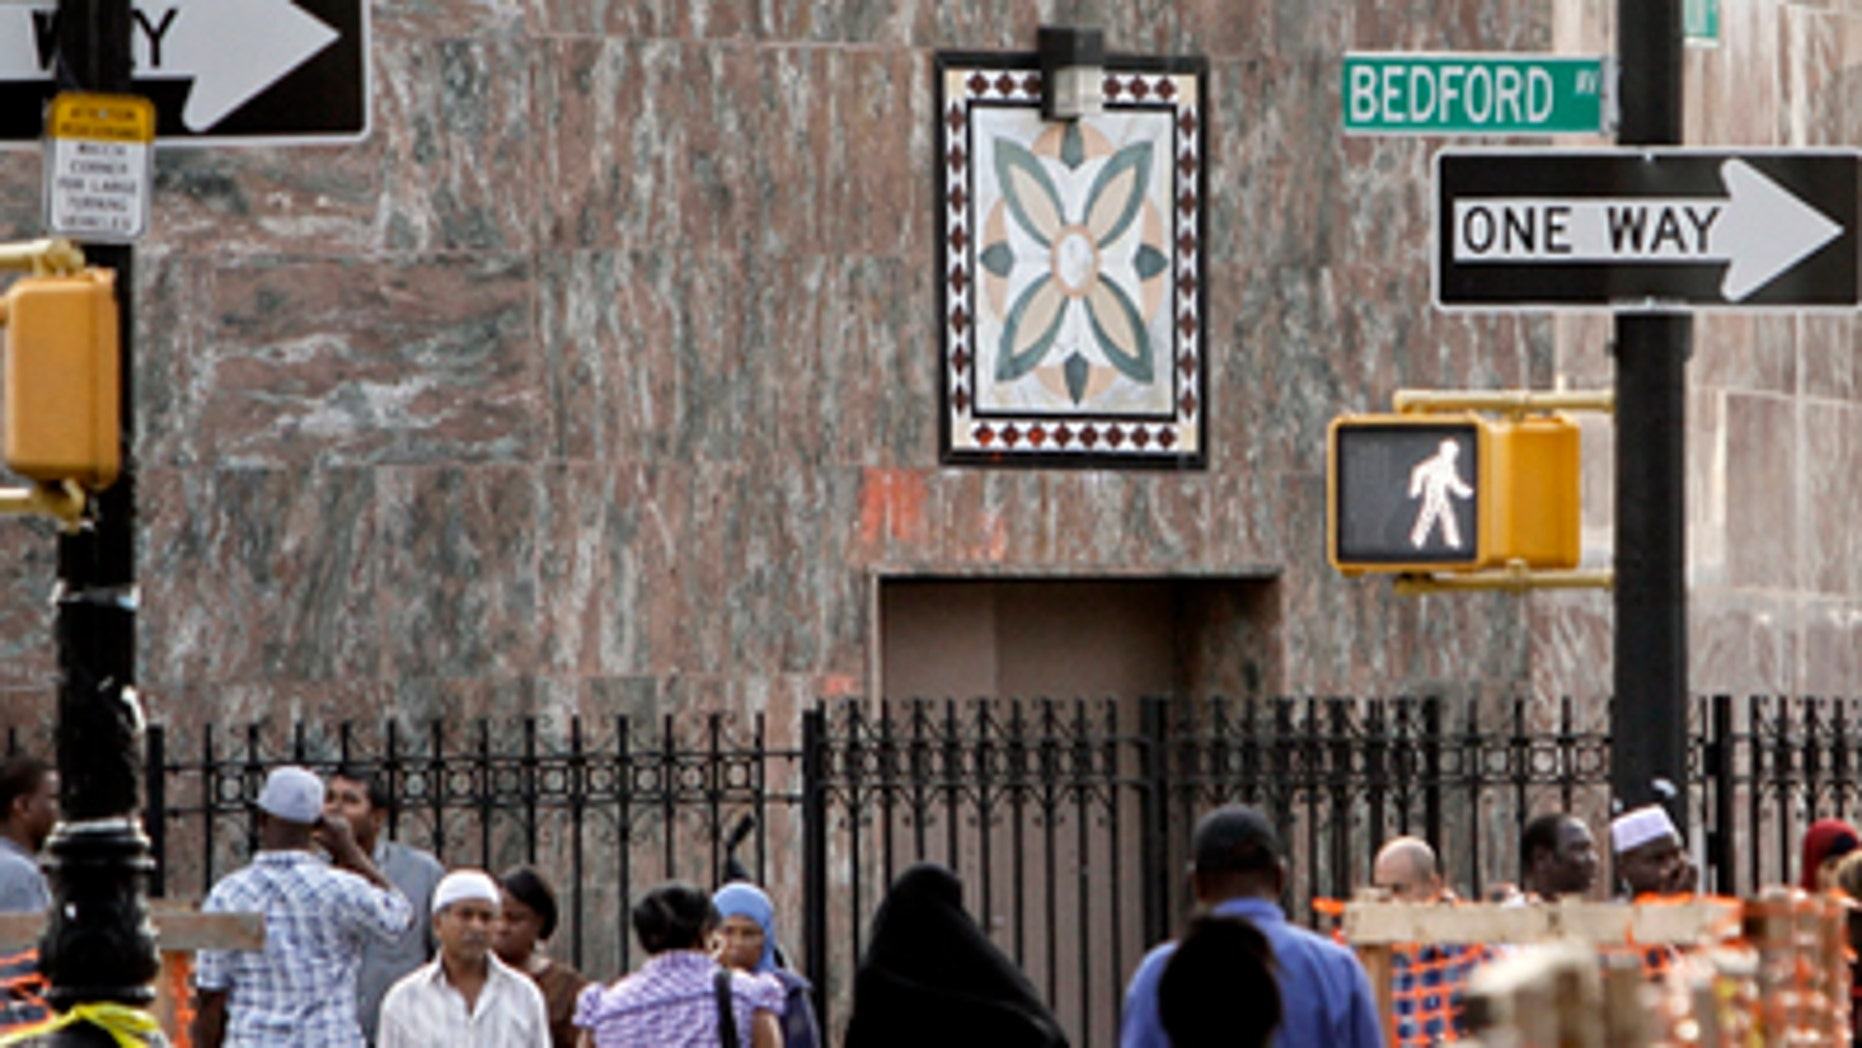 In this Aug. 18, 2011 photo, people pass below a New York Police Department security camera, upper left, which is above a mosque on Fulton St., in the Brooklyn neighborhood of Bedford-Stuyvesant in New York.